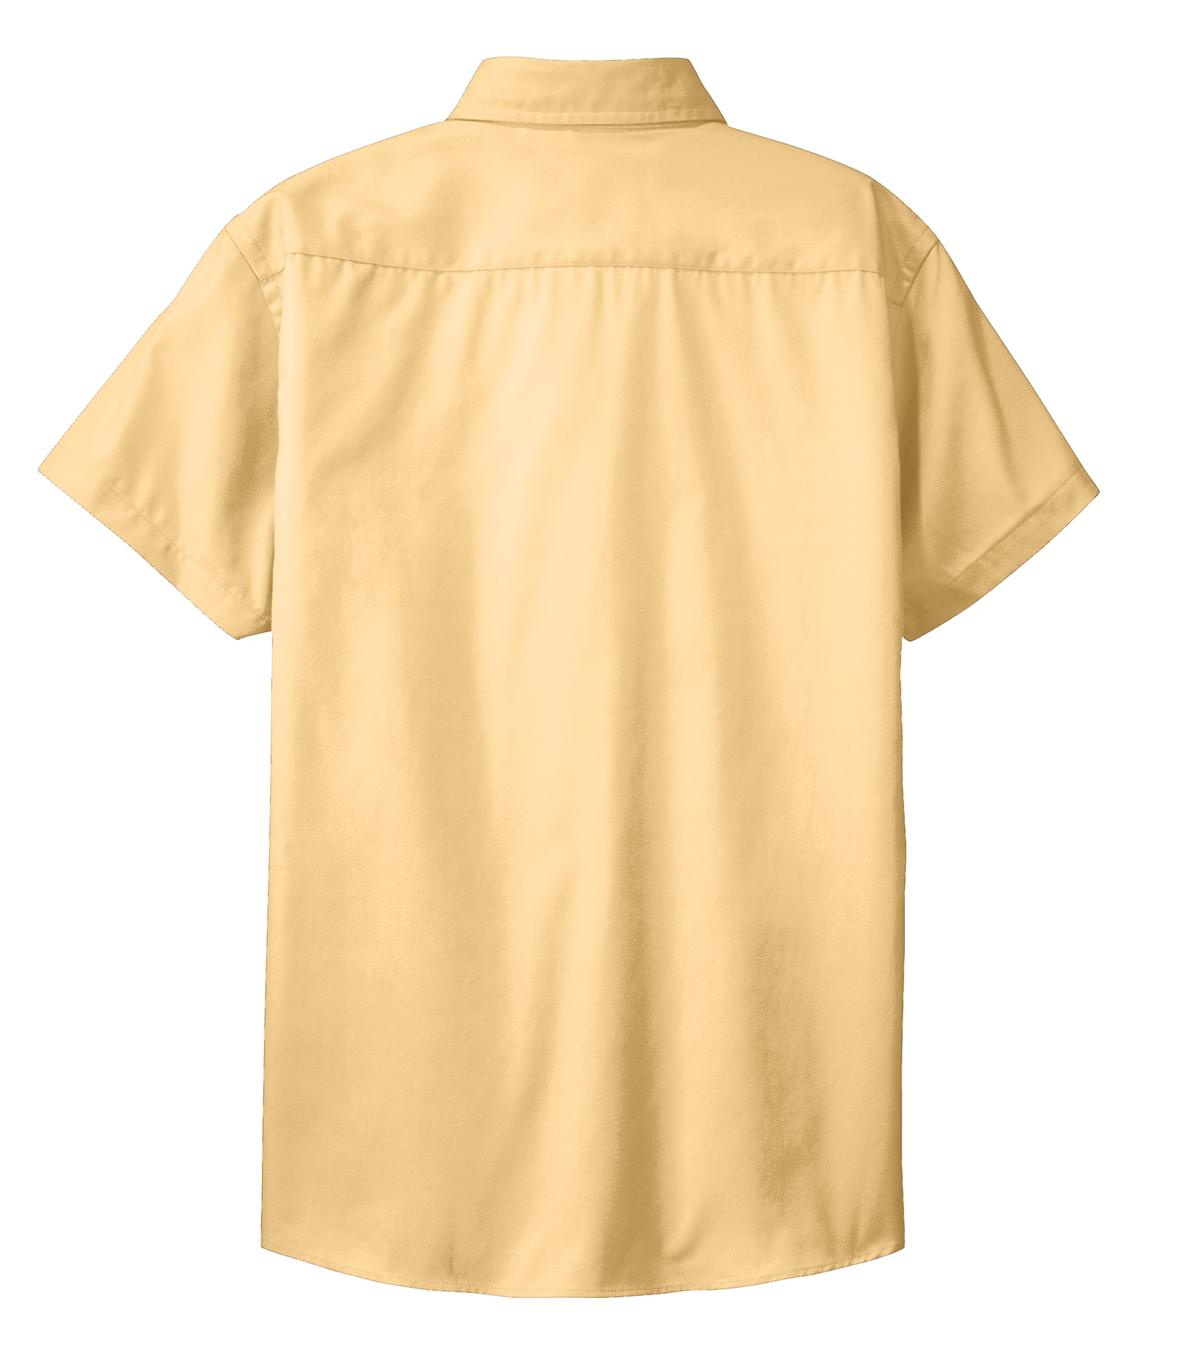 Mafoose Women's Comfortable Short Sleeve Easy Care Shirt Yellow-Back